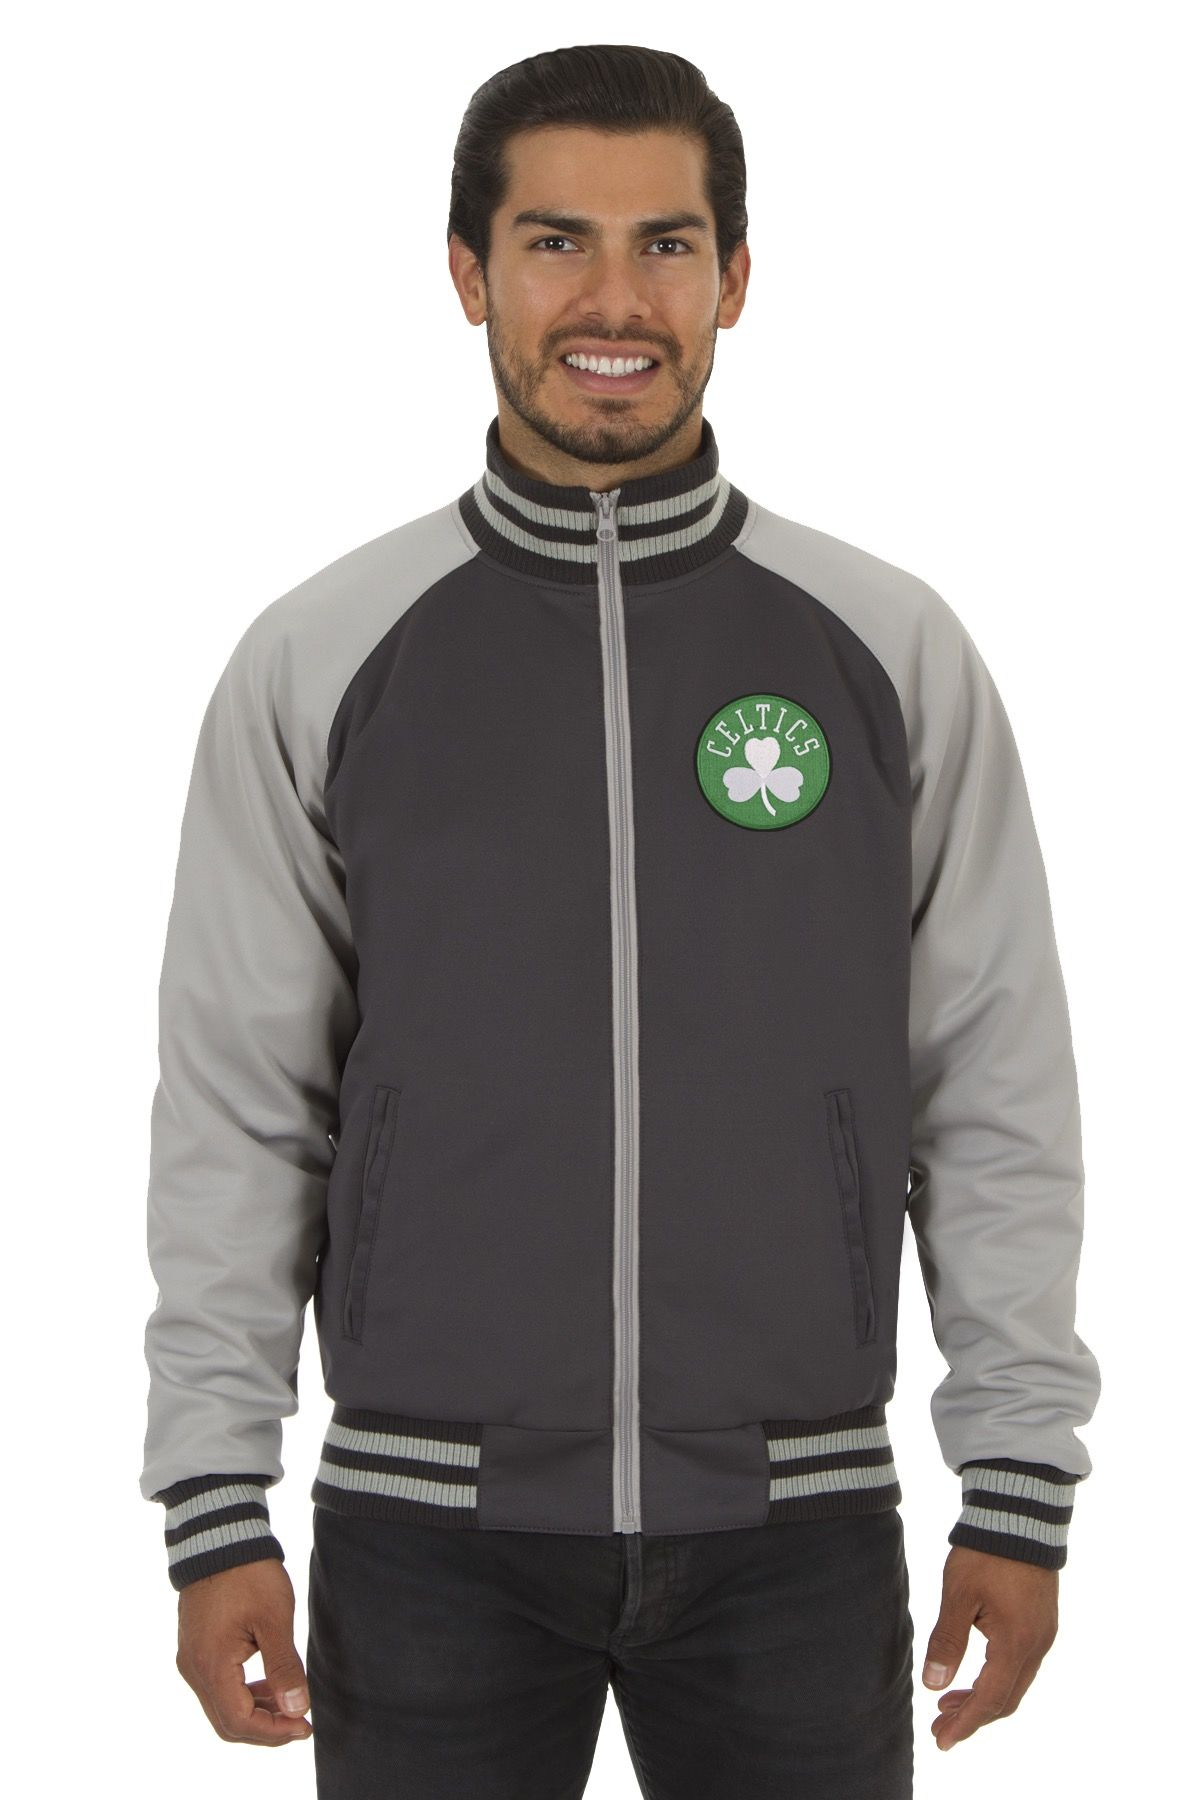 Boston Celtics Adult Polyester Reversible Track Jacket